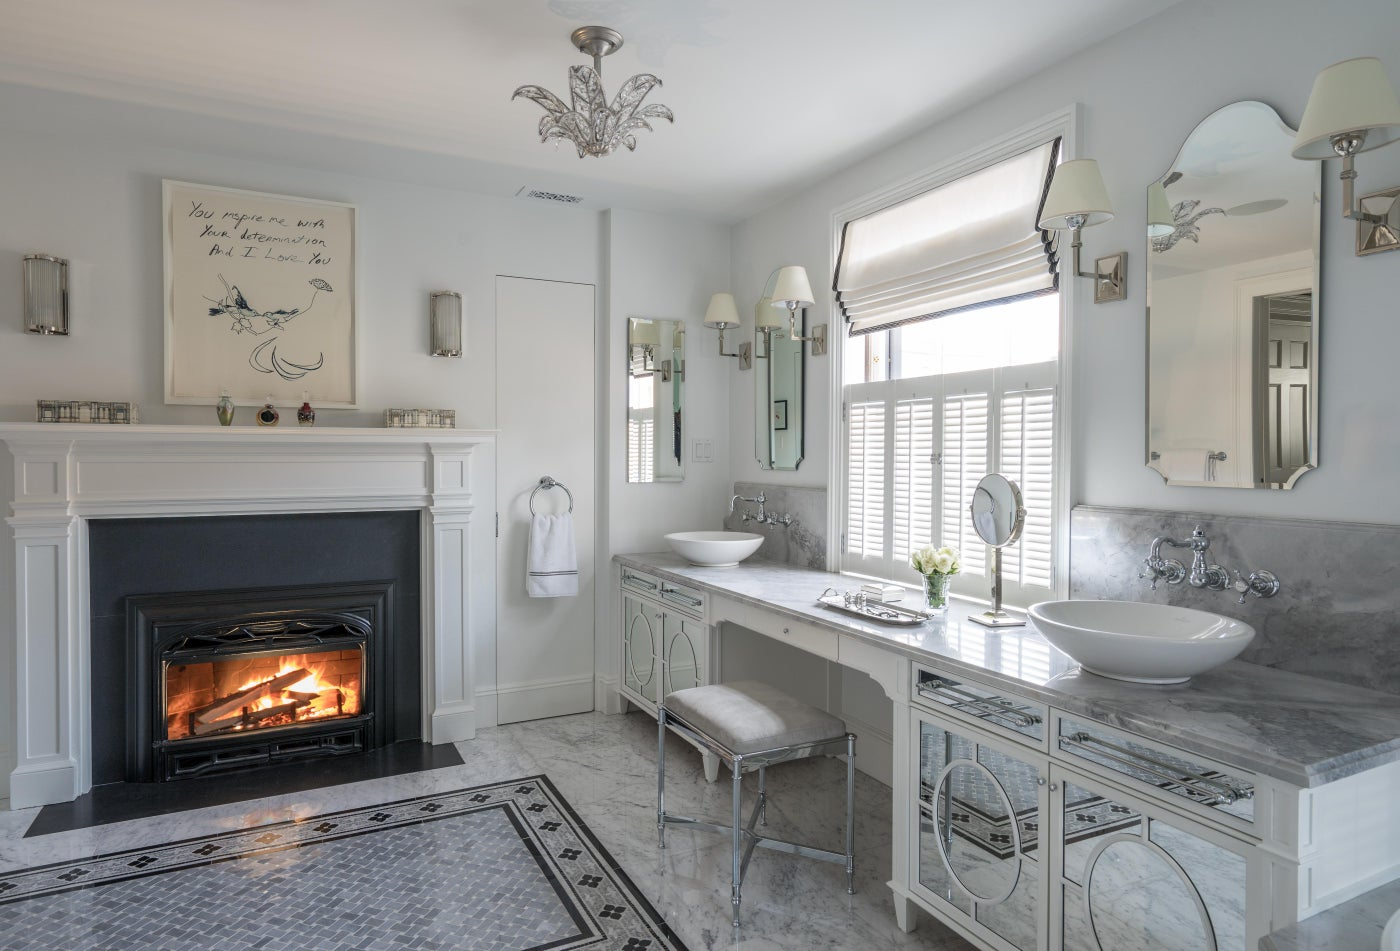 Glamorous Master Bathroom with Double Vanity and Fireplace